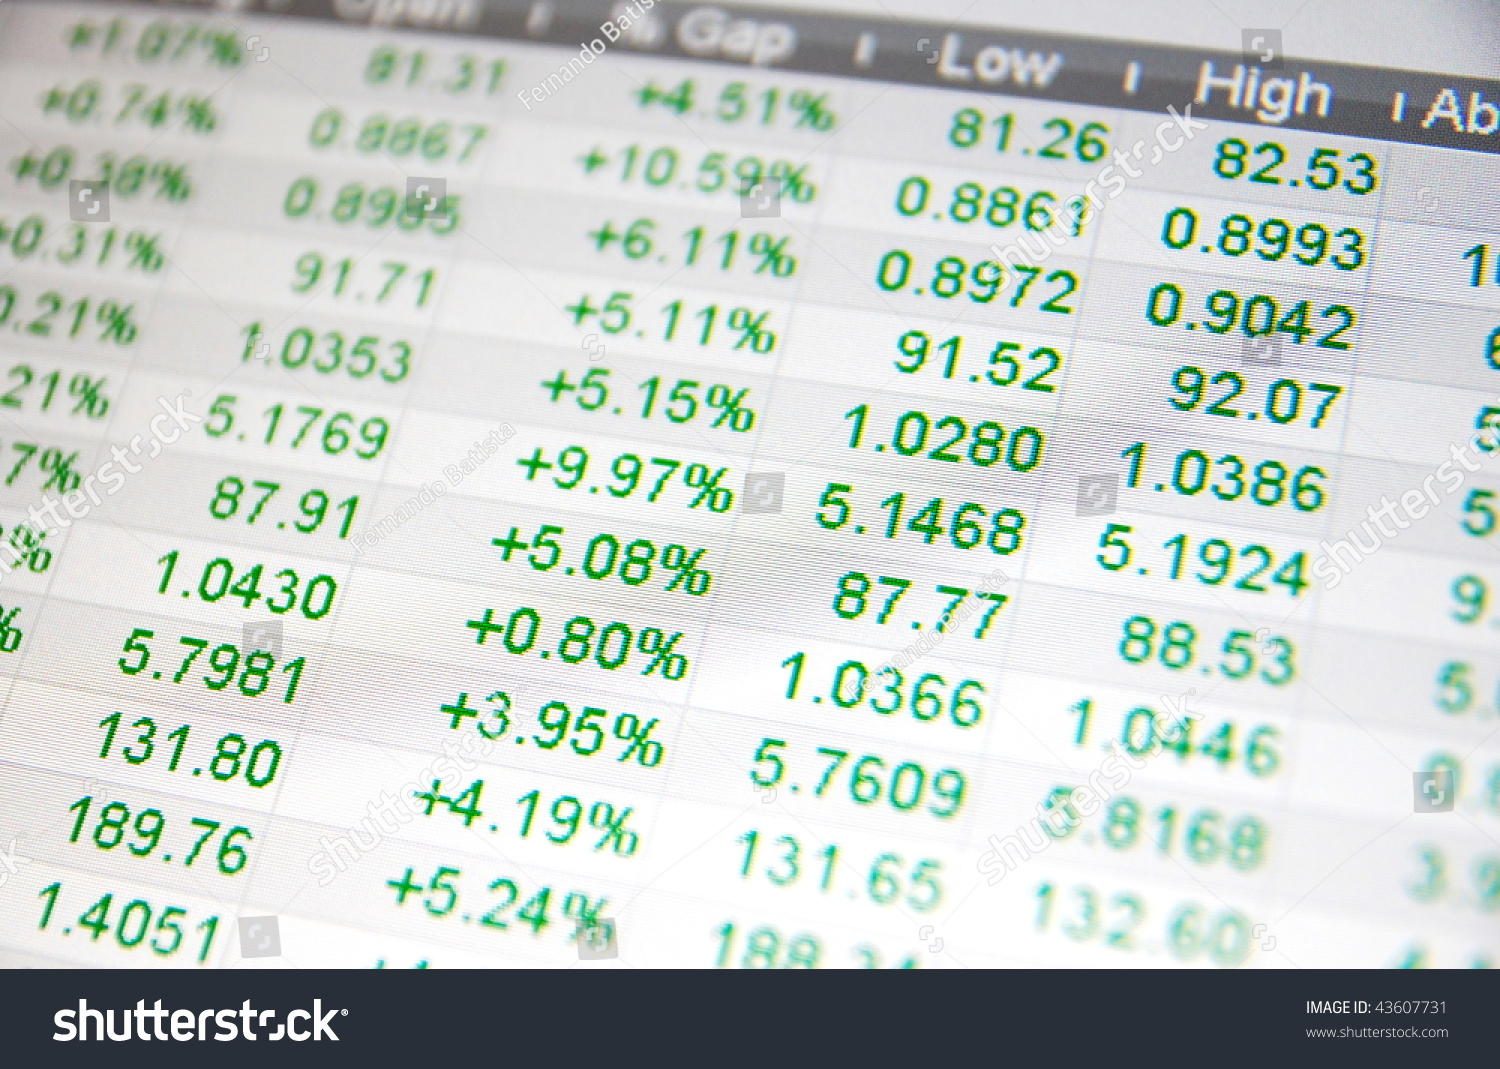 Real Time Stock Quotes Stock Quotes No Real Time Quotes Stock Photo 43607731  Shutterstock